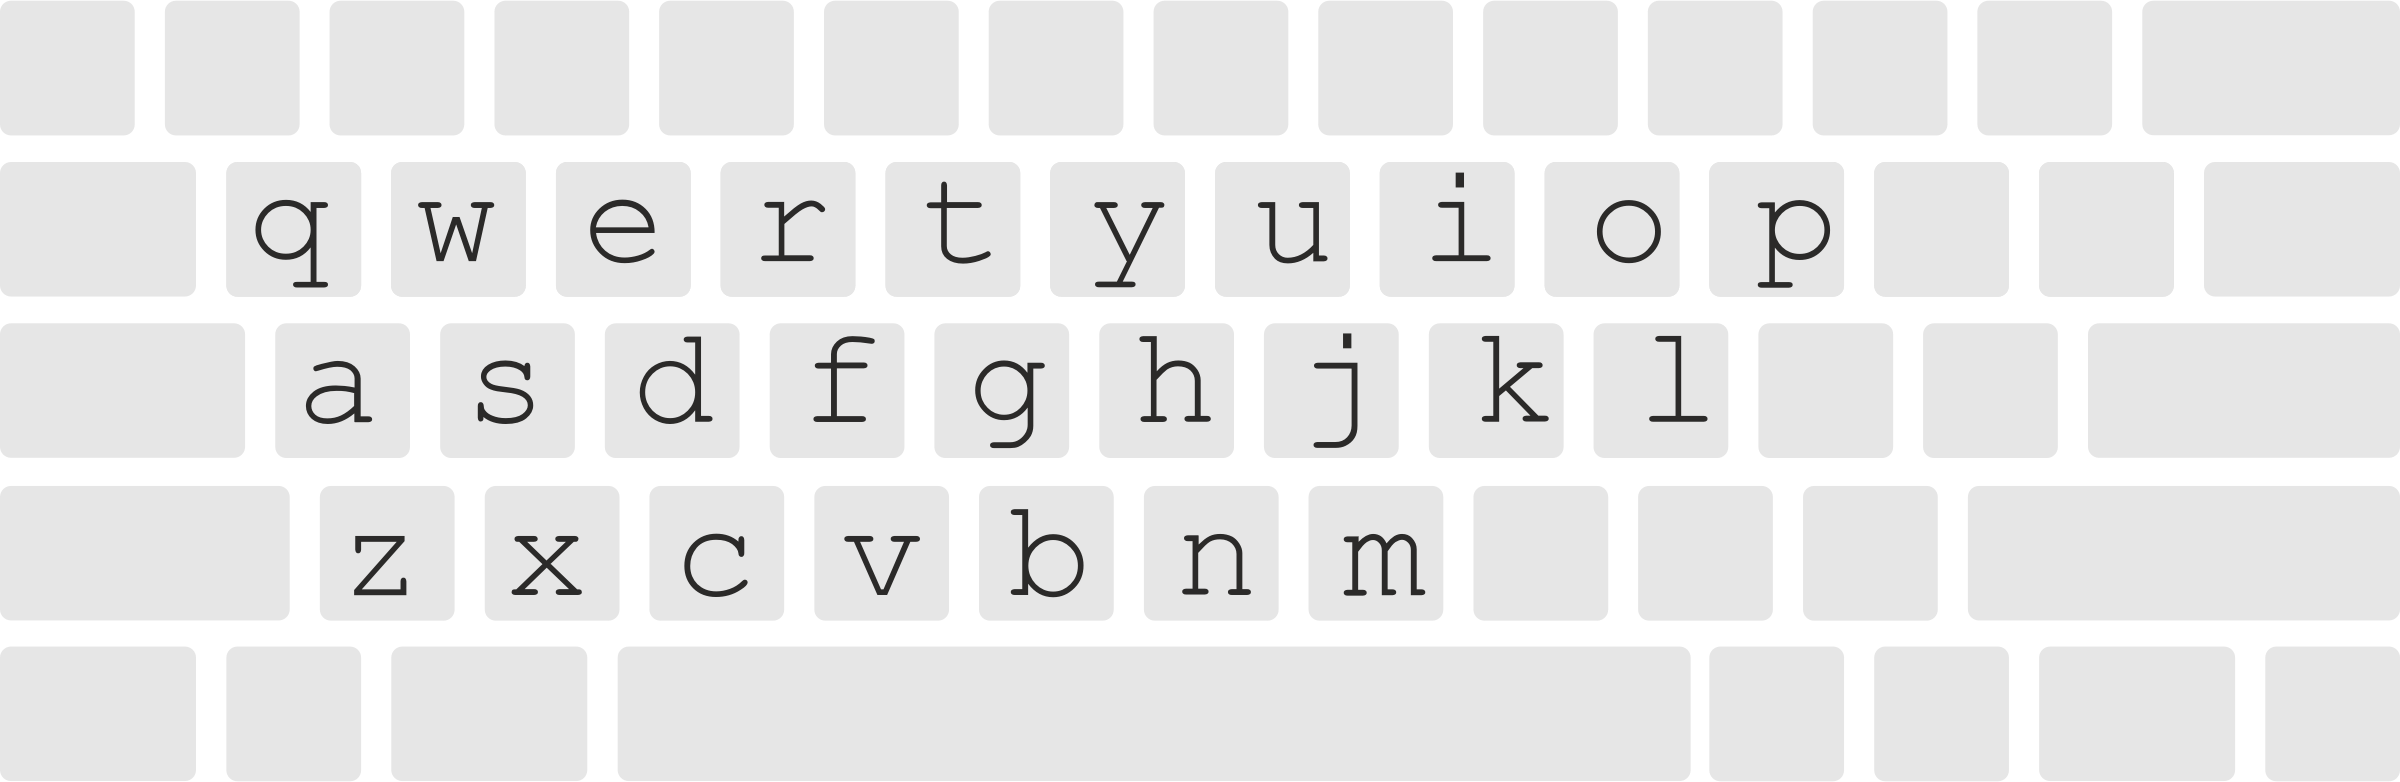 Keyboard layout png. Free cliparts download clip